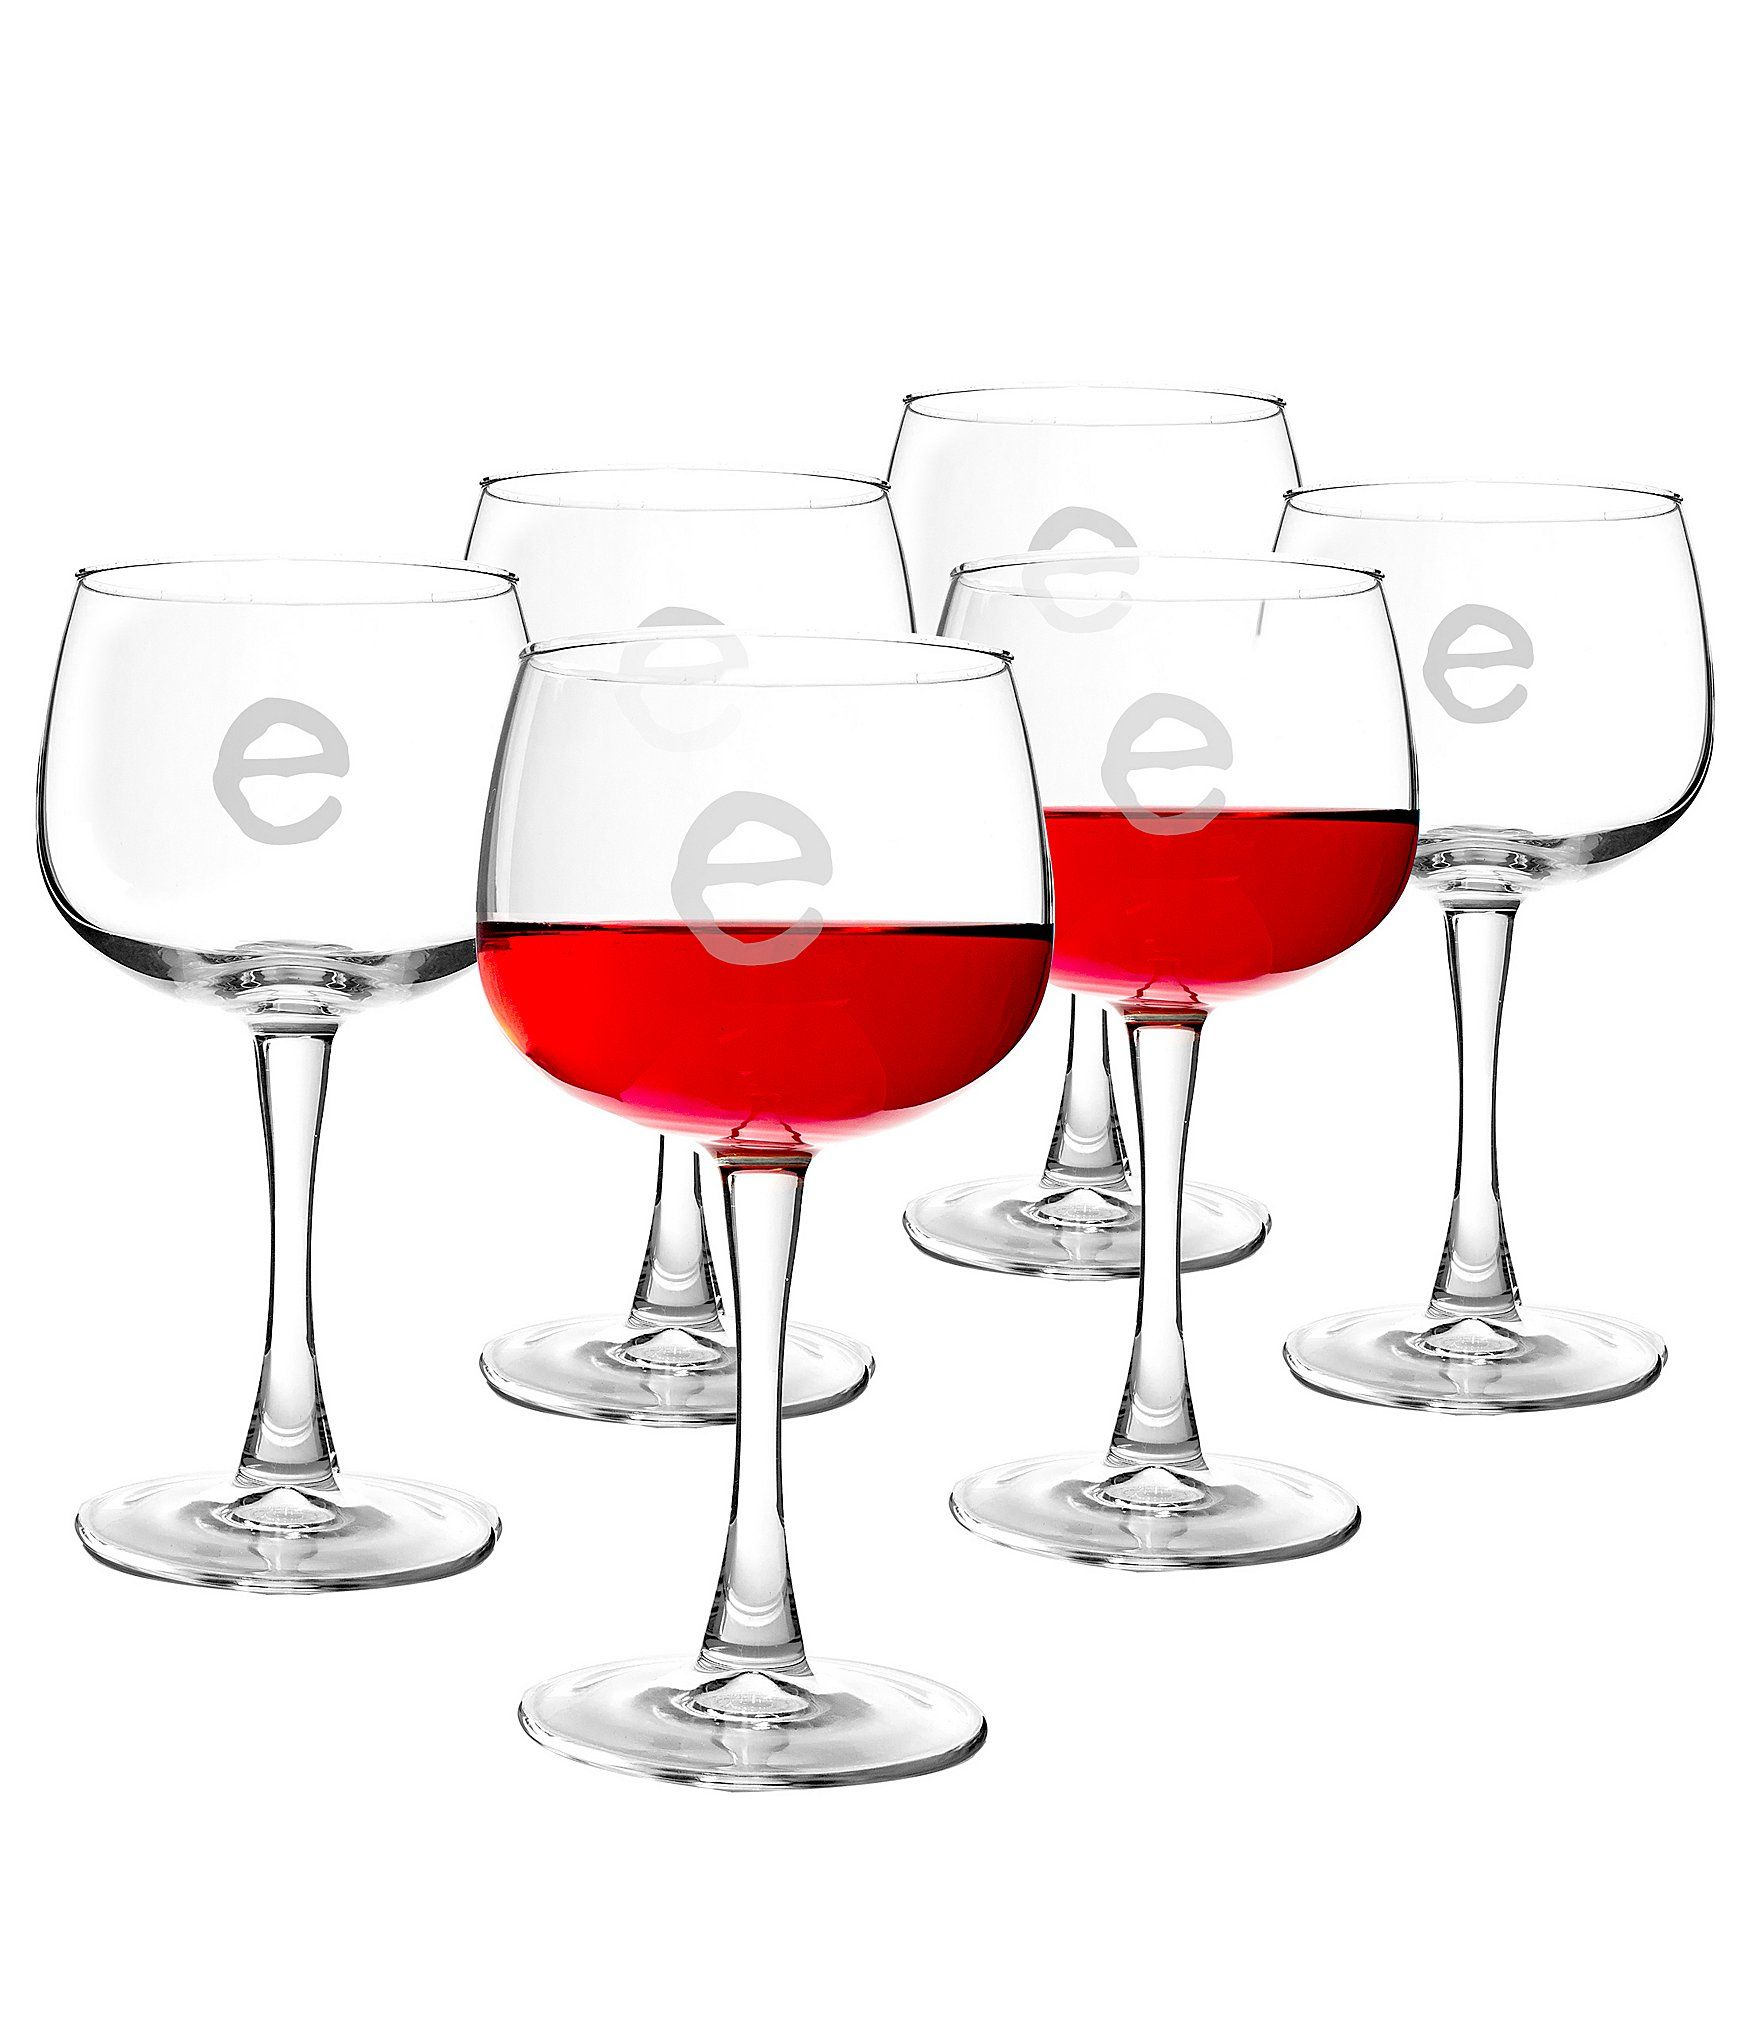 Cathy S Concepts Initial Red Wine Glasses Dillard S In 2020 Red Wine Glasses Wine Glass Set Wine Glass